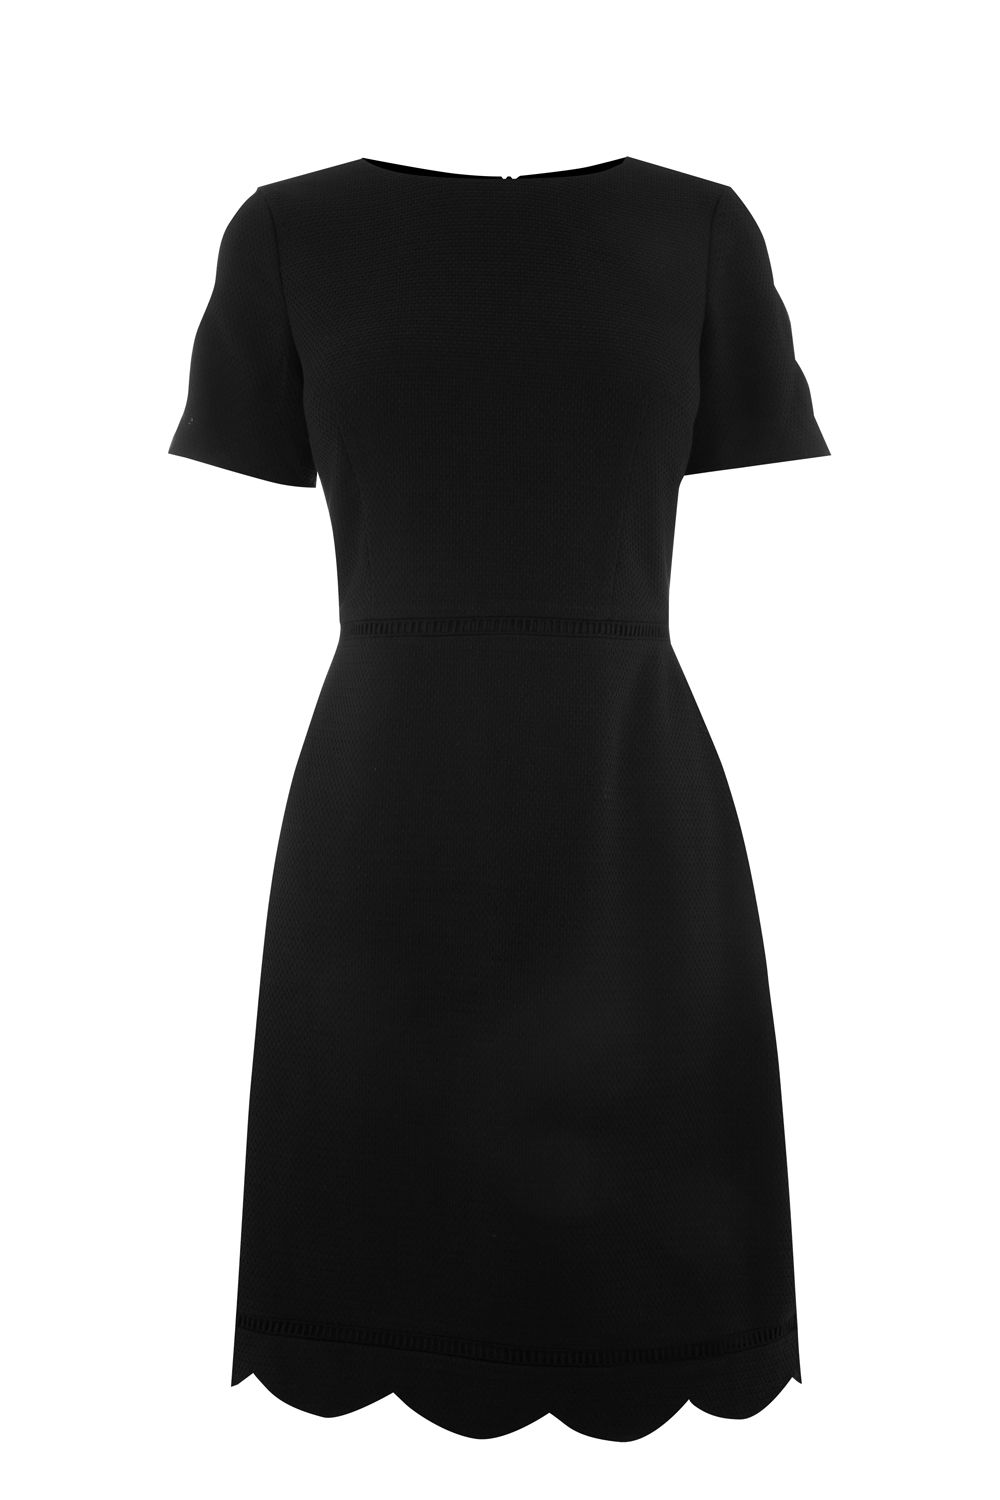 Oasis Scallop Sleeve Dress Longer Length, Black